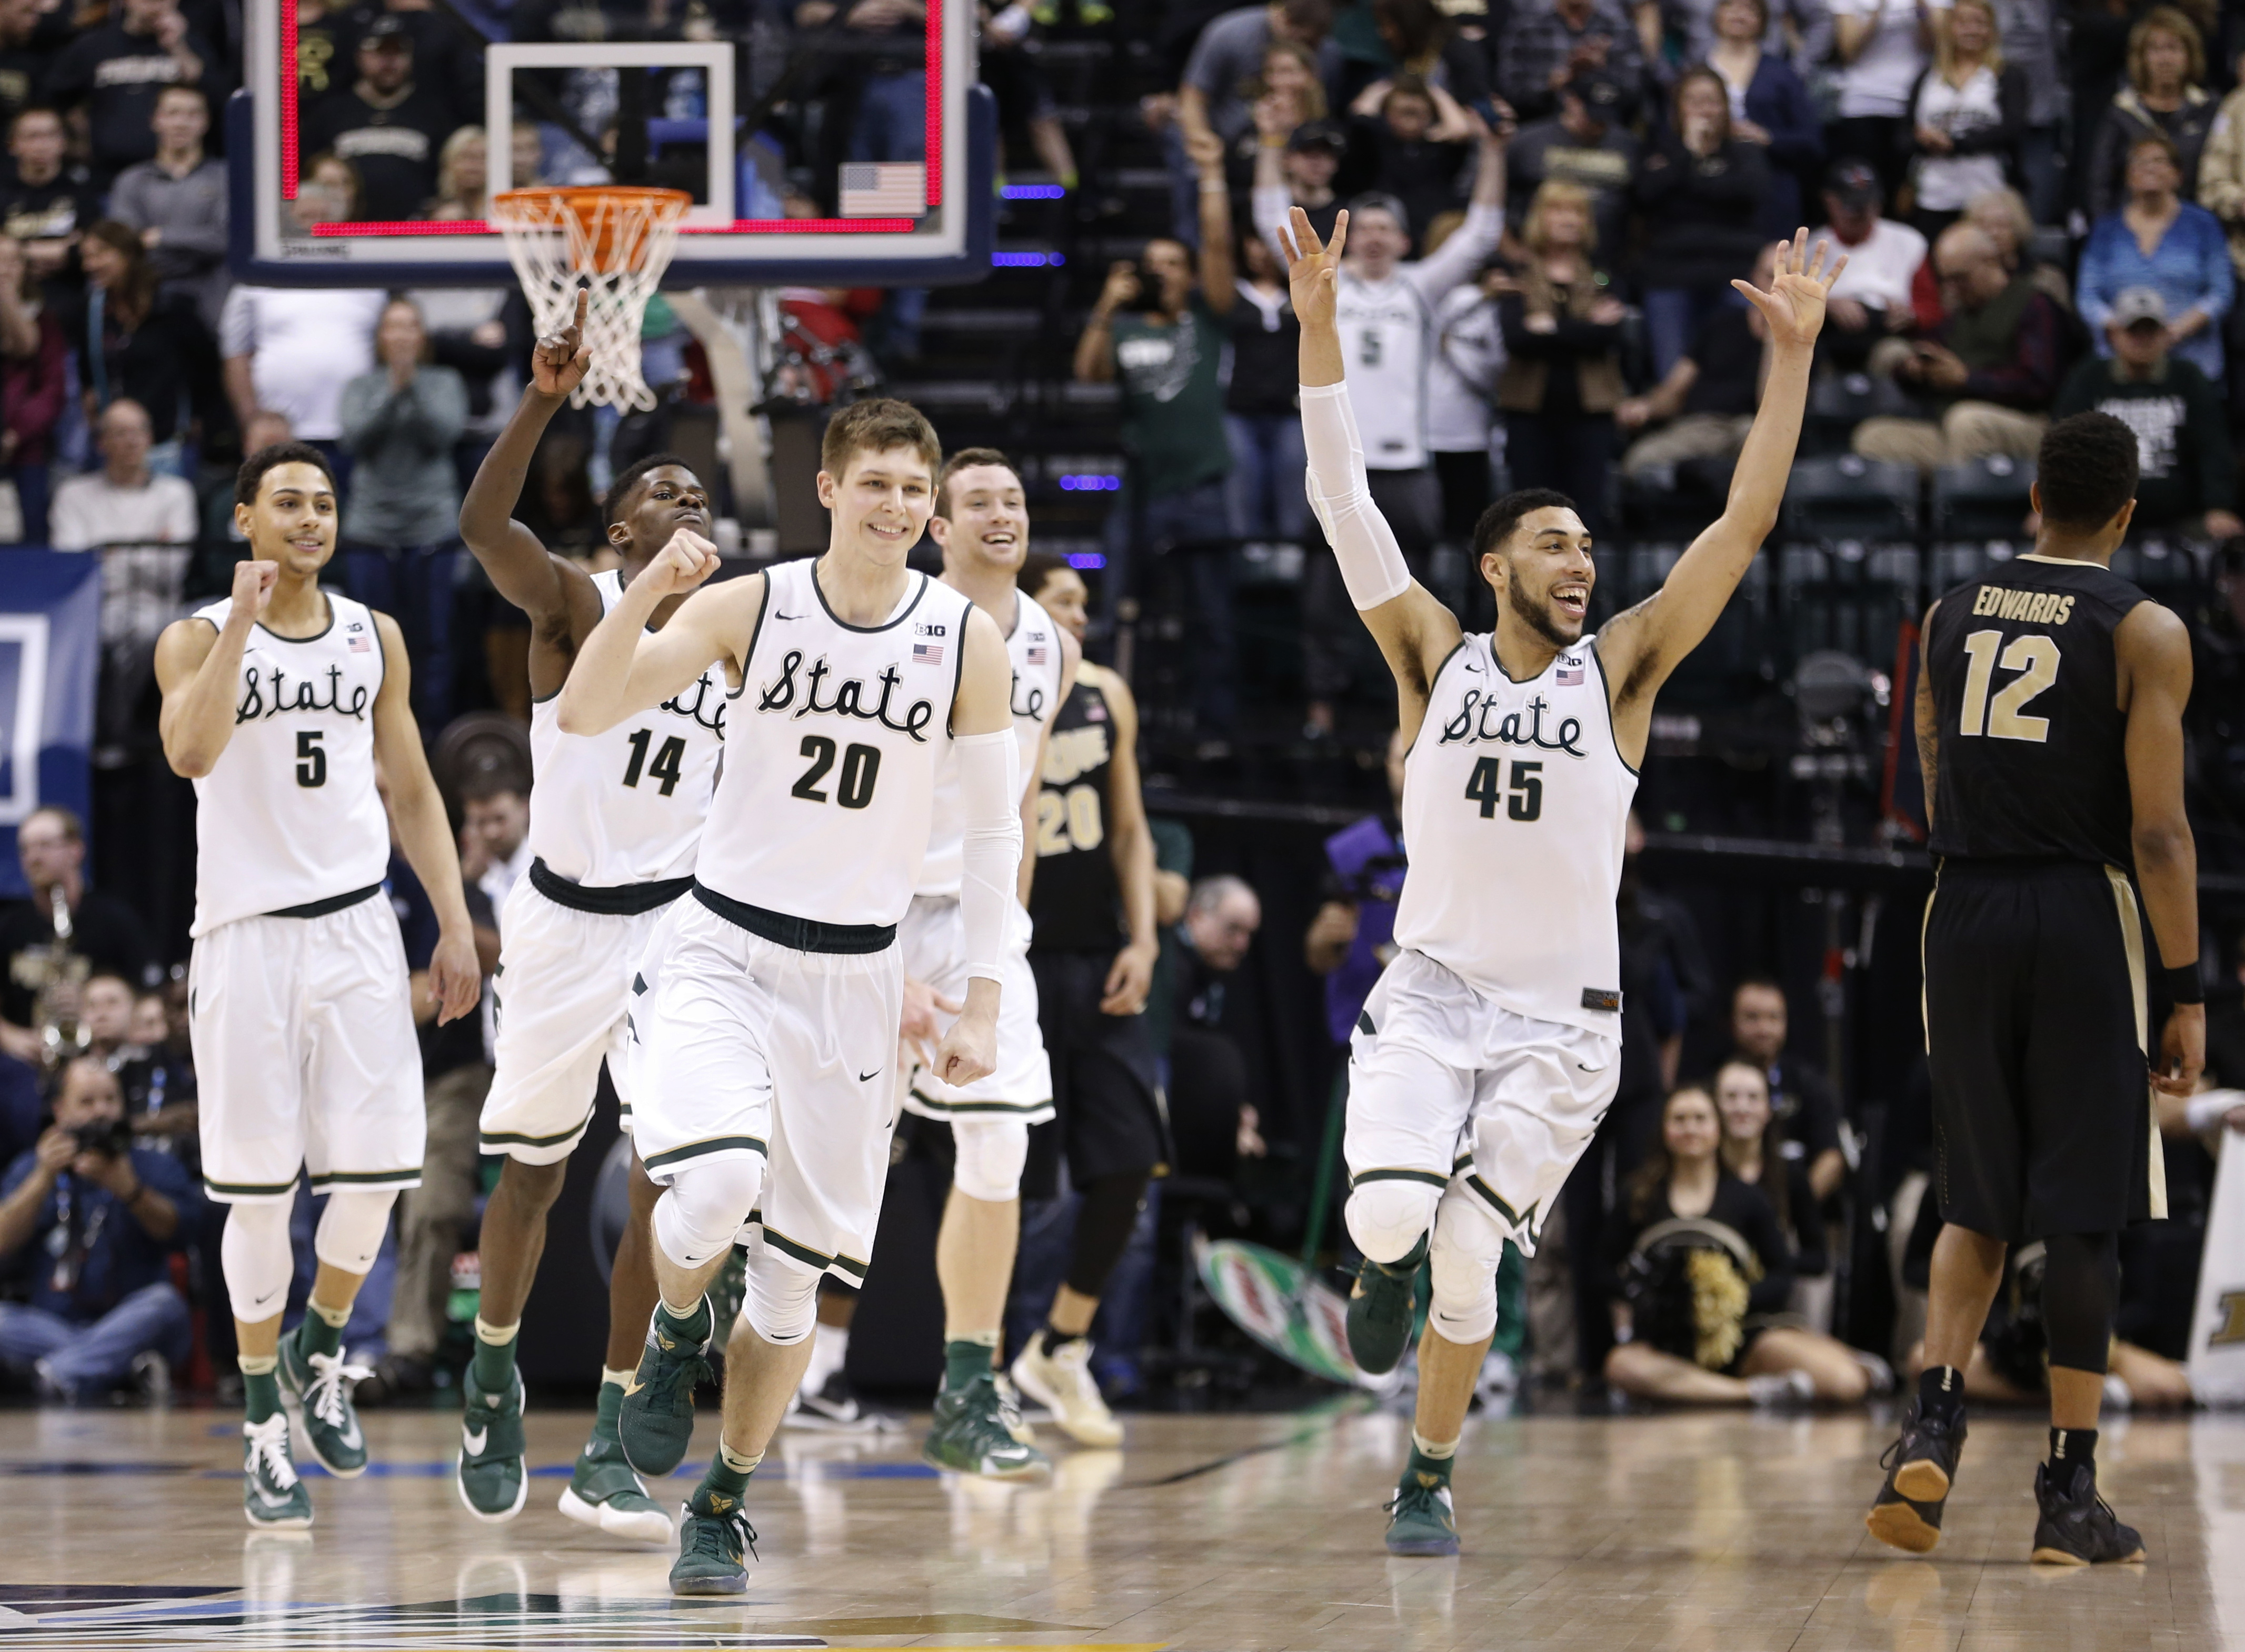 Michigan State players celebrate after an NCAA college basketball game against Purdue in the finals at the Big Ten Conference tournament, Sunday, March 13, 2016, in Indianapolis. Michigan State won 66-62. (AP Photo/AJ Mast)